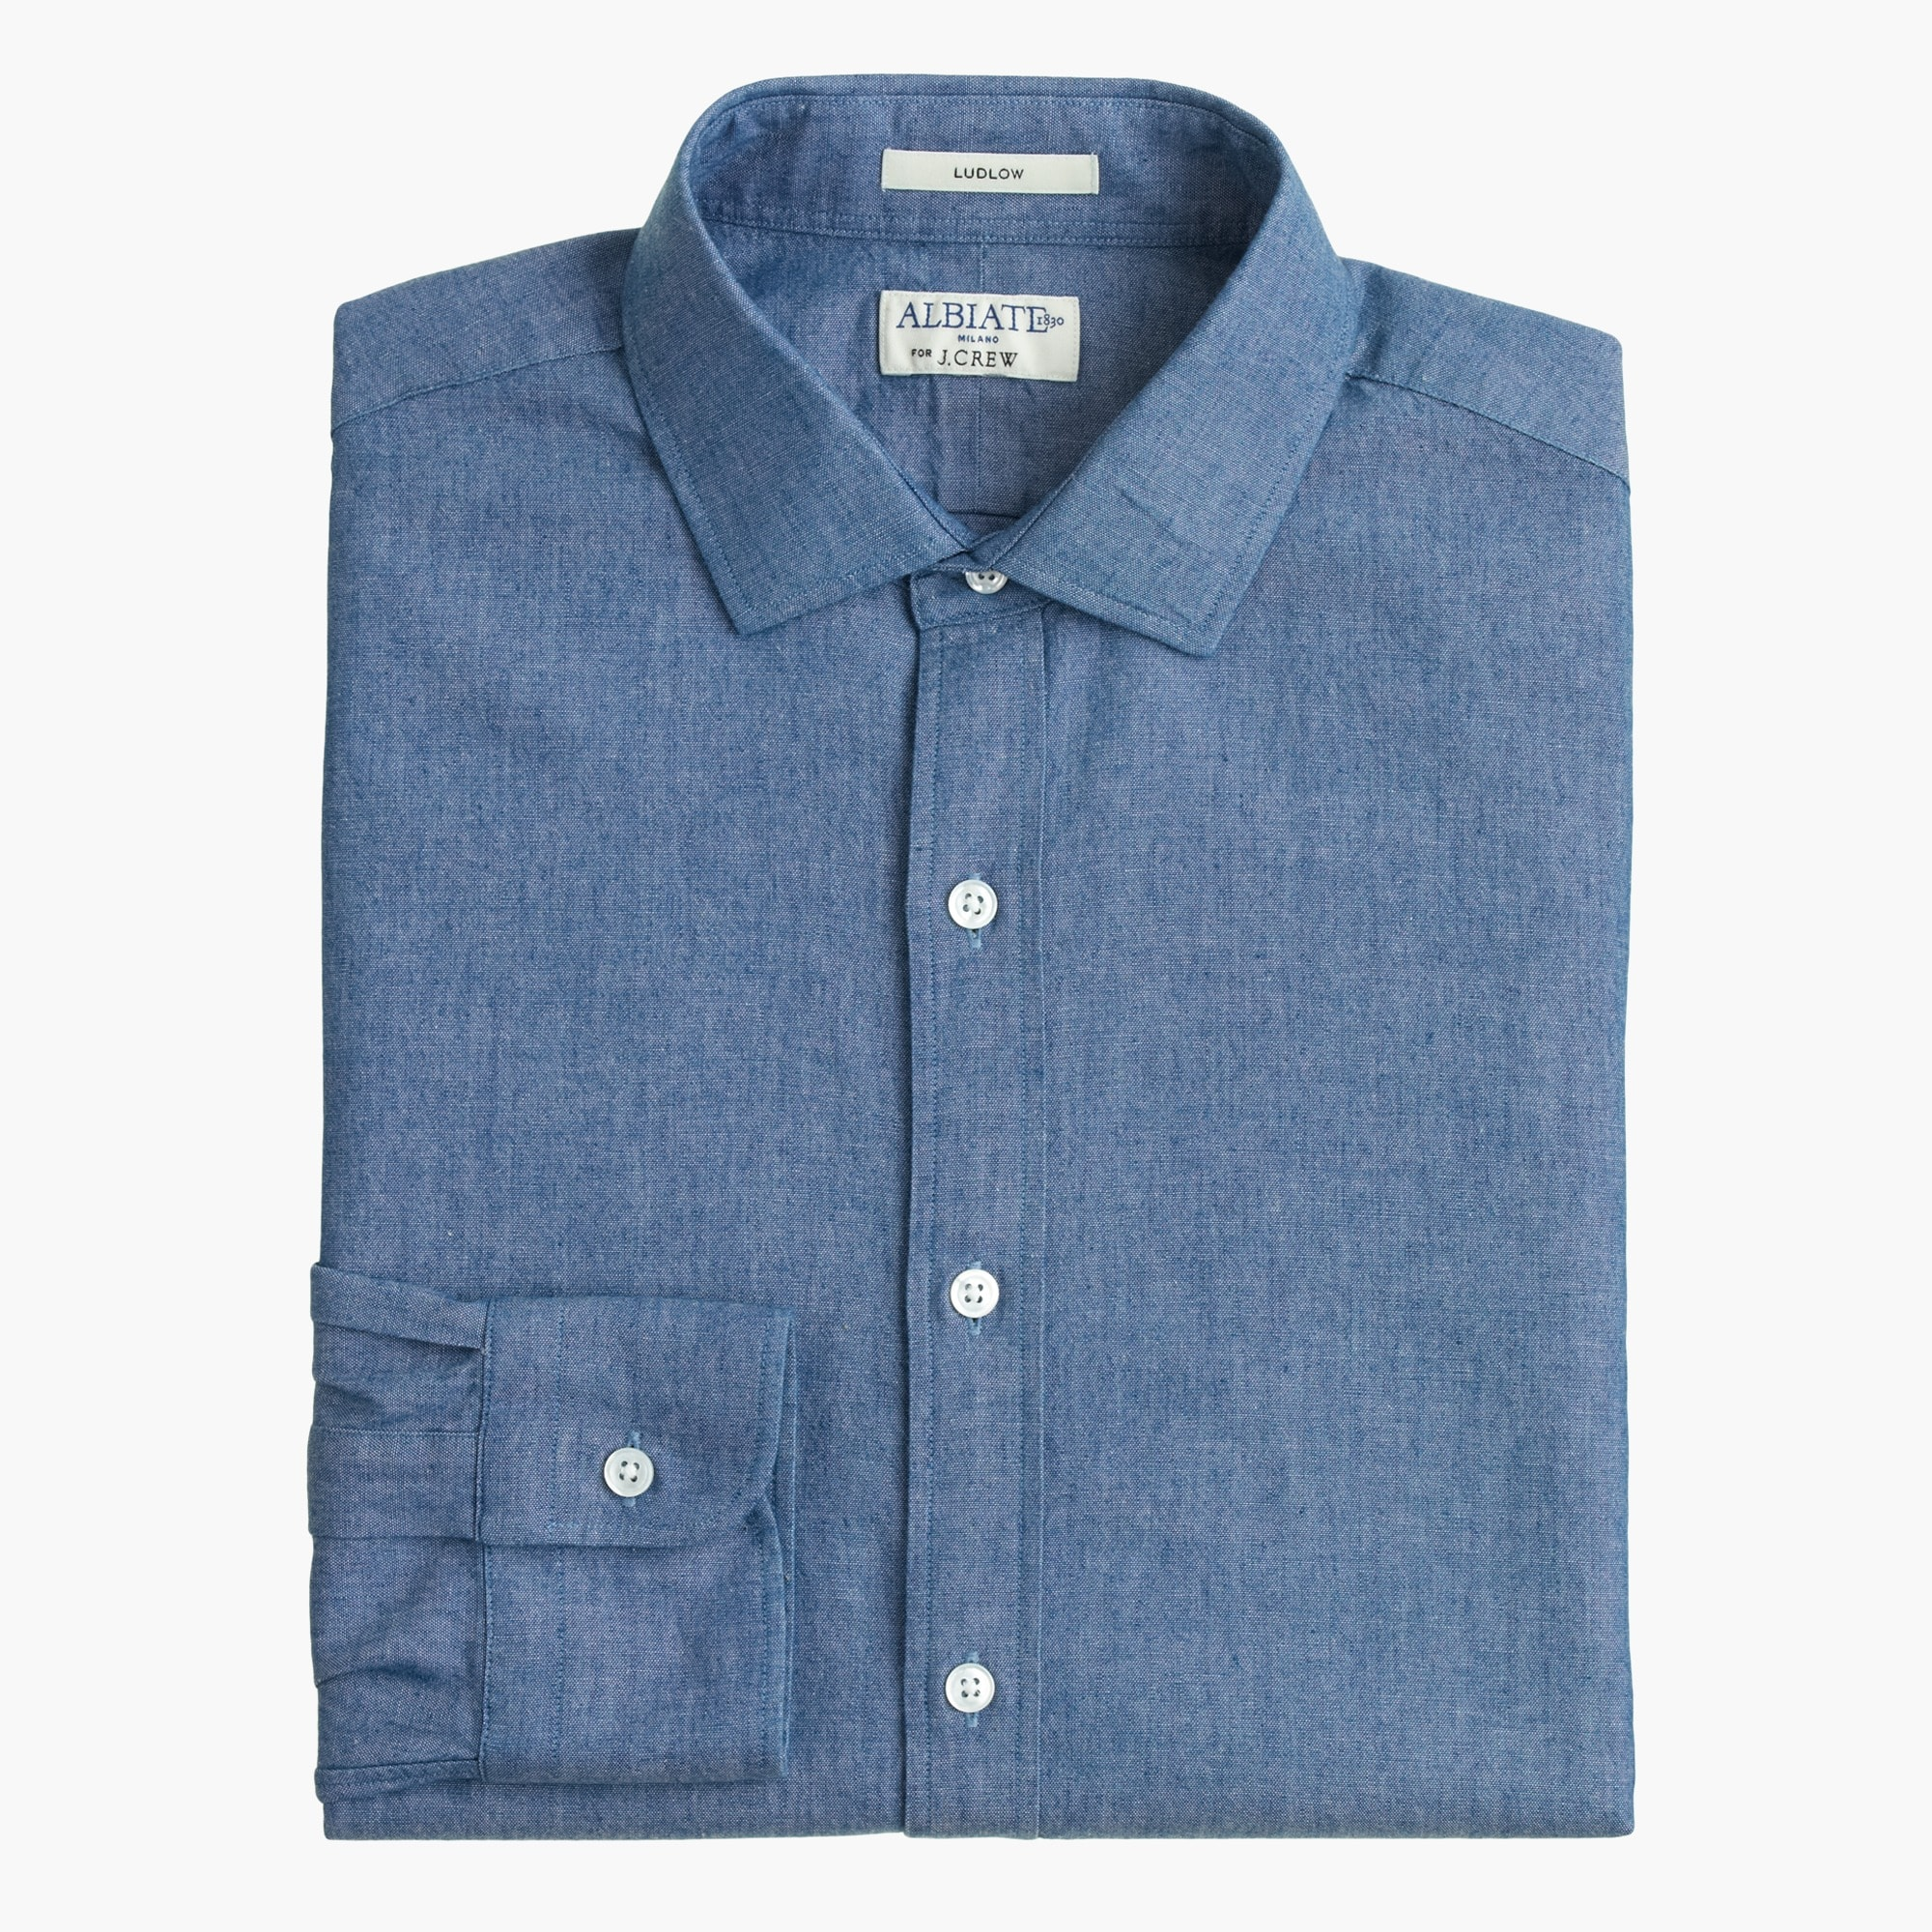 Albiate 1830 for J.Crew Ludlow Slim-fit spread-collar shirt in Italian chambray